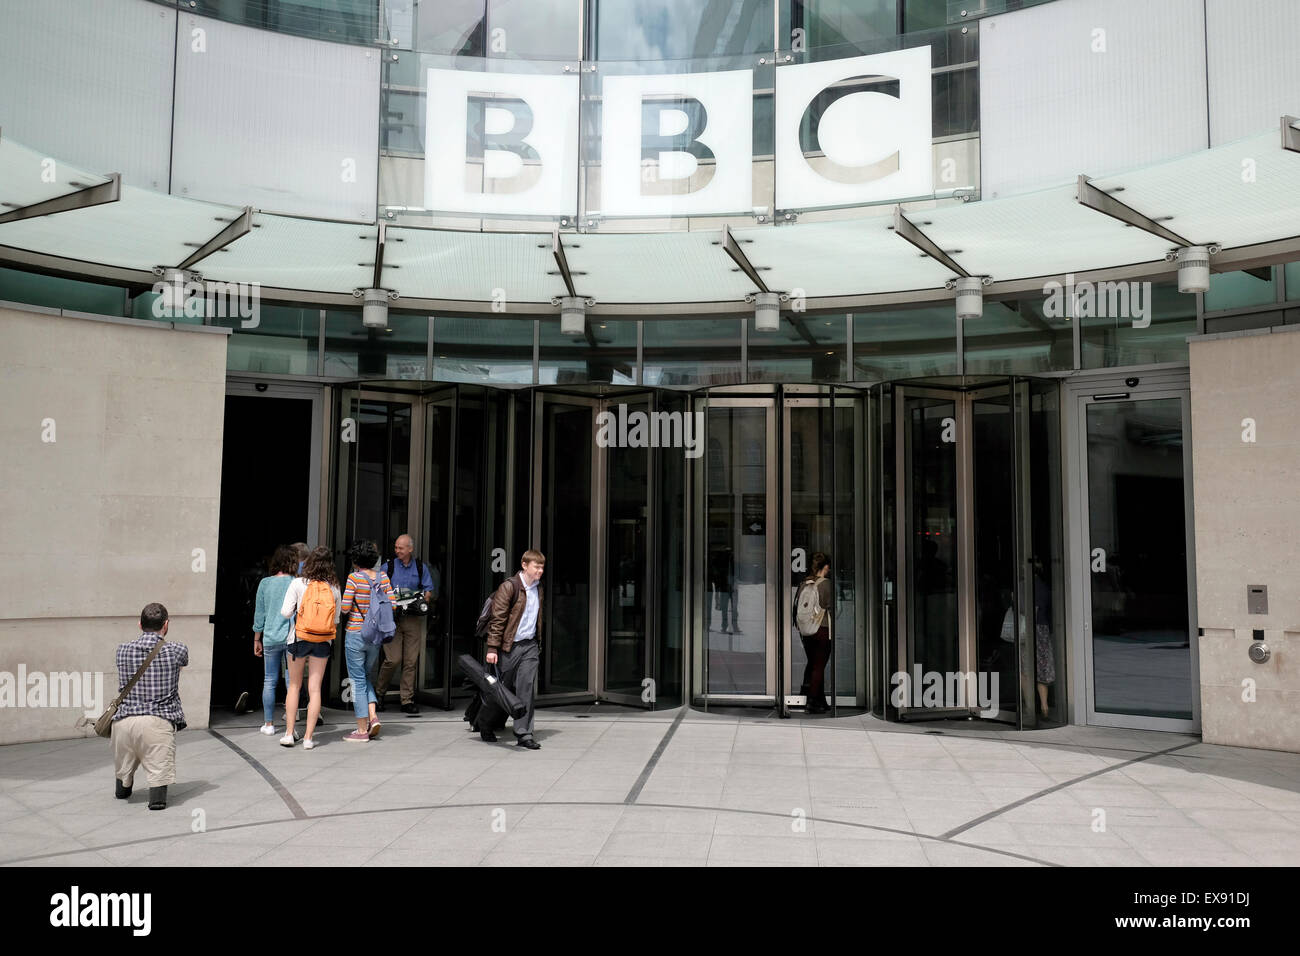 A general view of the entrance of BBC in central London - Stock Image